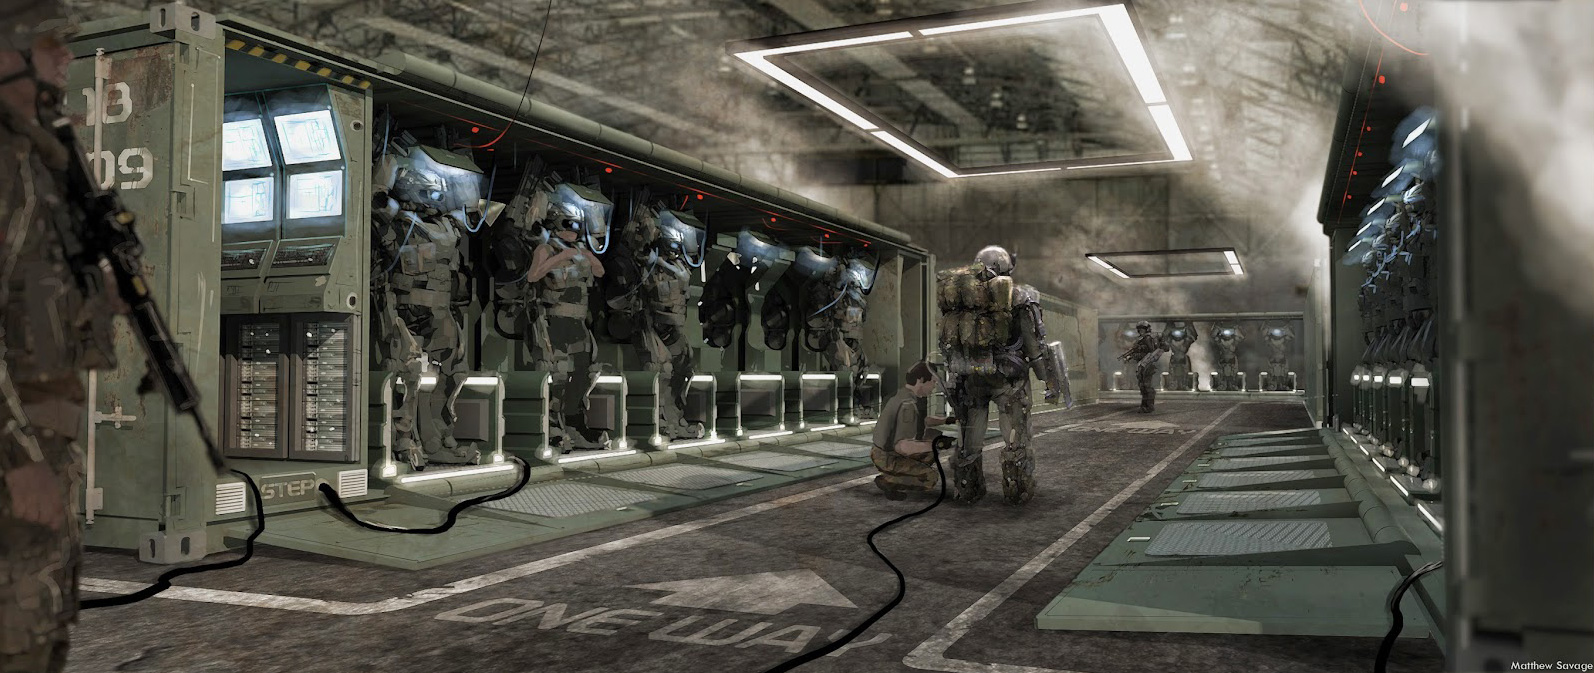 Edge of Tomorrow Concept Art by Matthew Savage (18 pics)